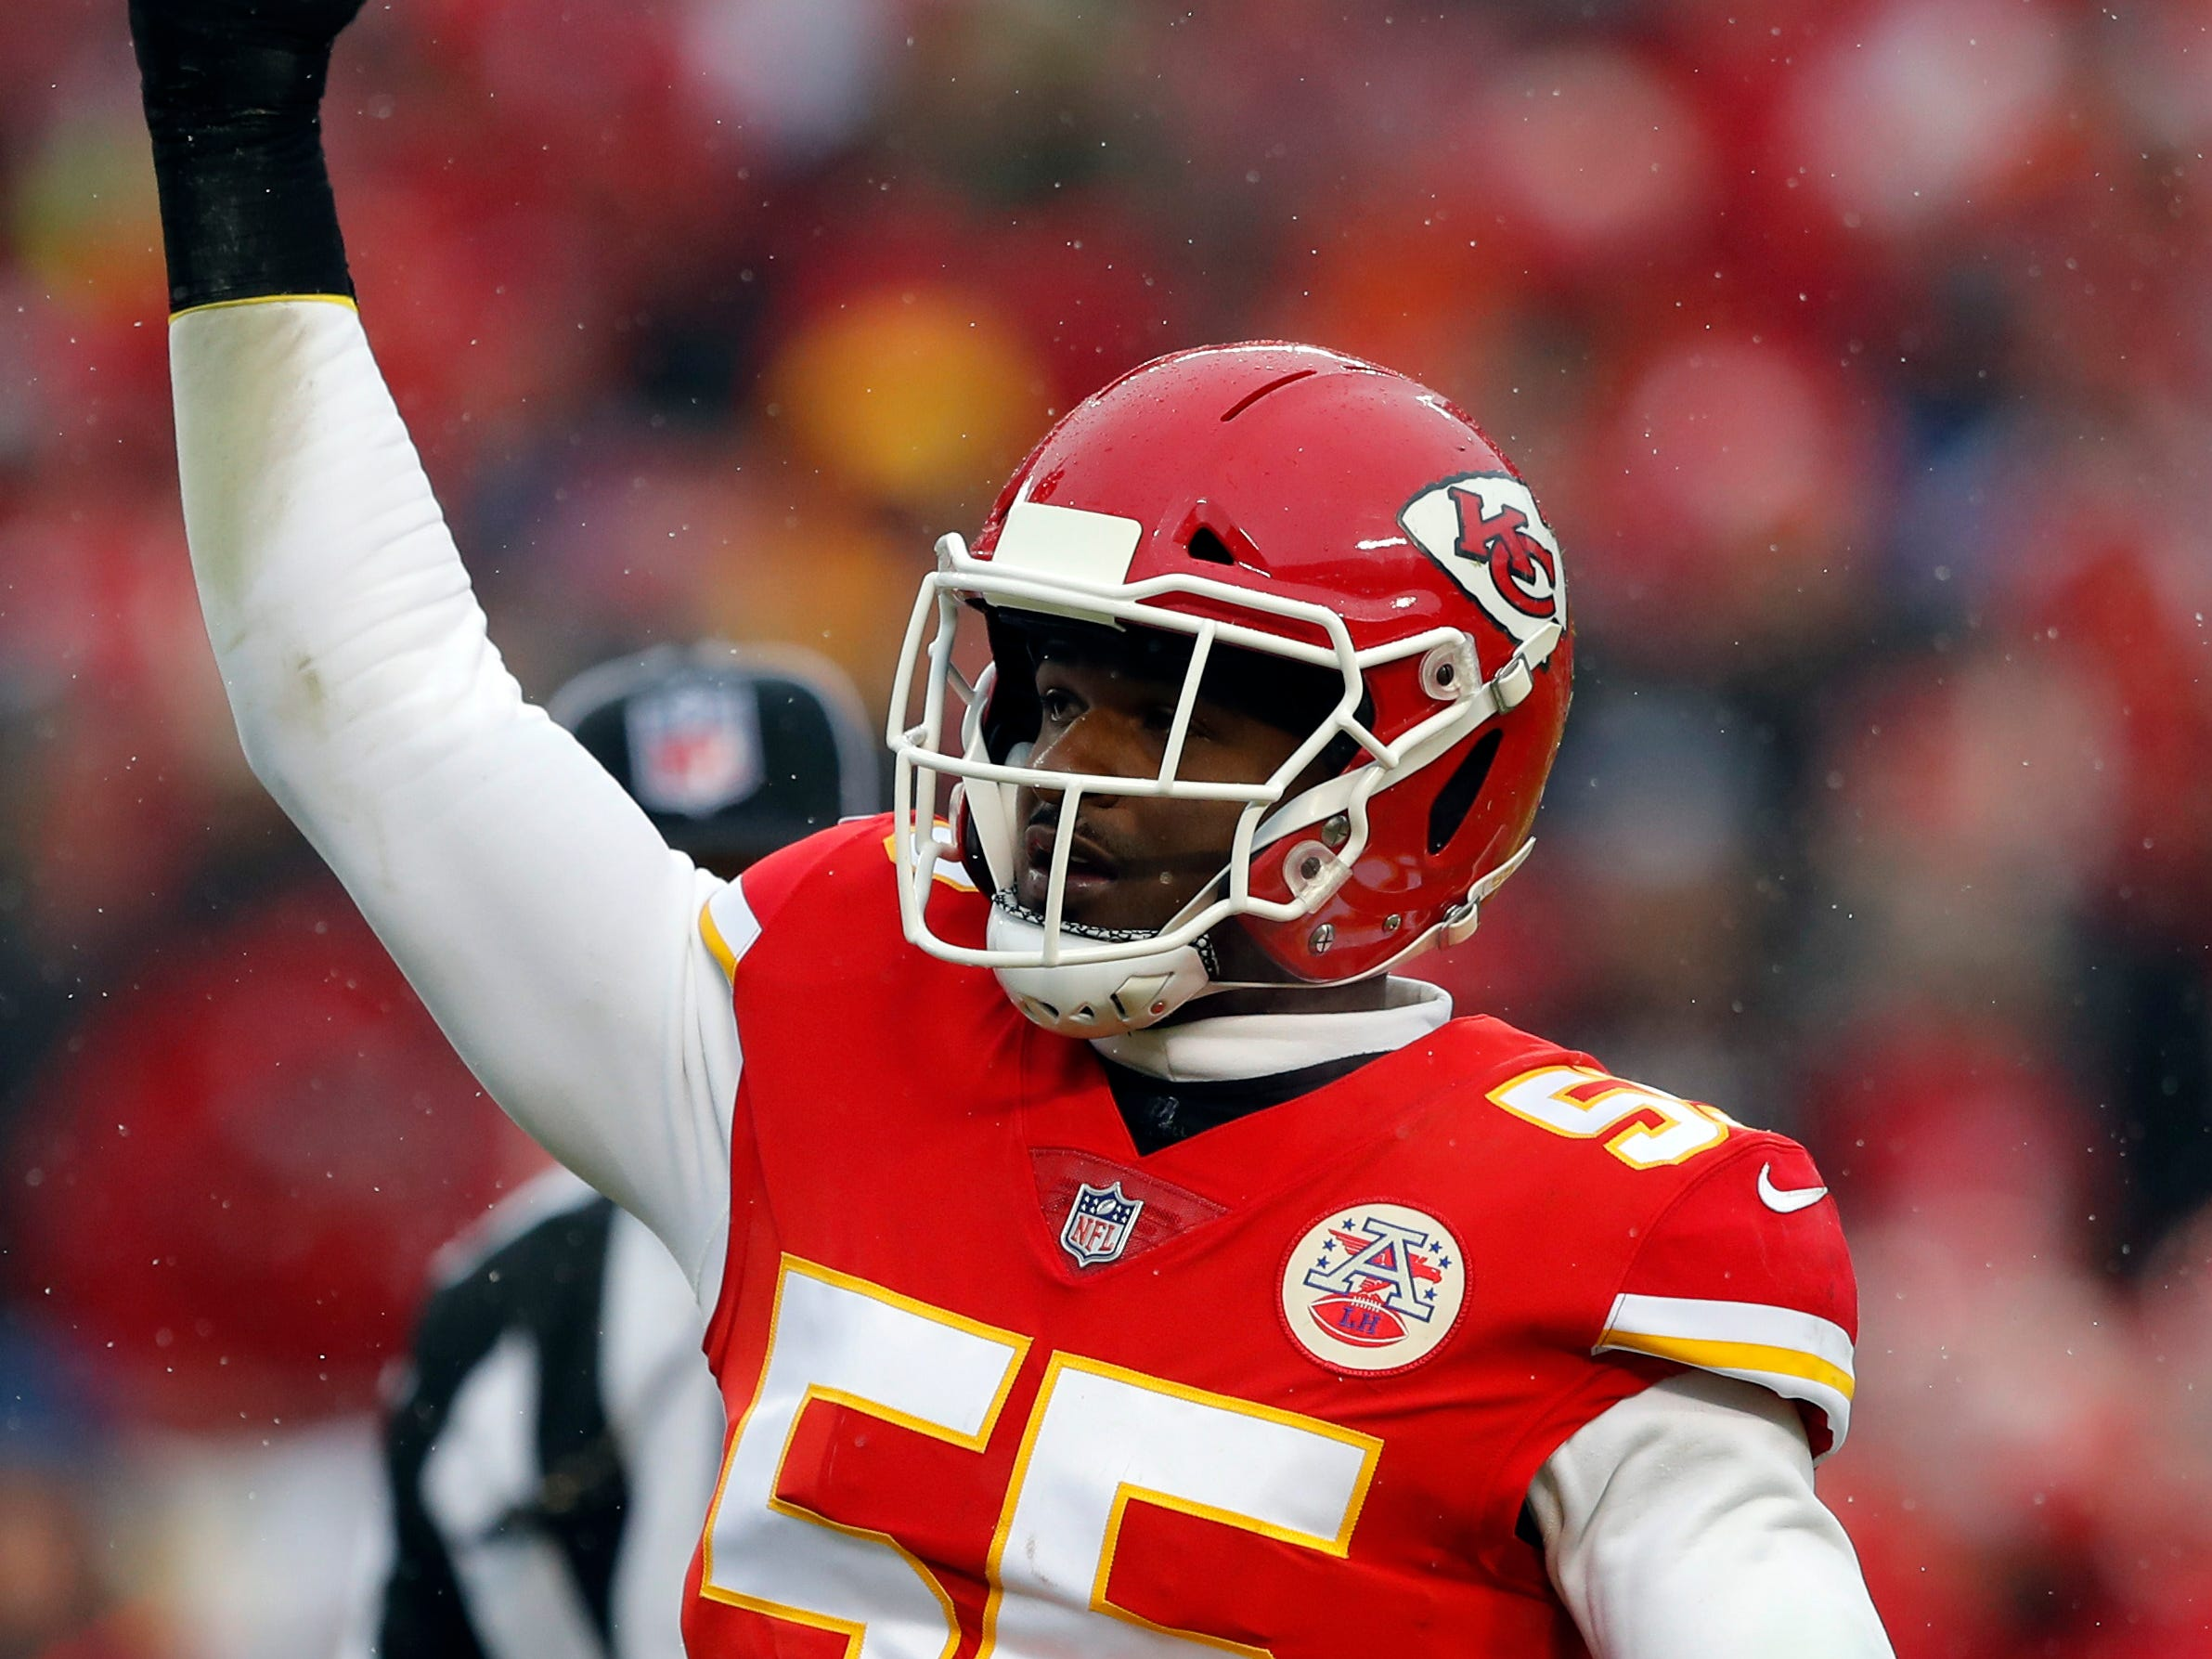 Dee Ford, LB, Kansas City: Ford might be the most productive pass rusher on the market, hitting double-digit sacks for the second time in three seasons in 2018, while his 77 pressures were the most of any edge defender. At 252 pounds, he's not as stout against the run, and there would be some positional overlap with Devon Kennard.